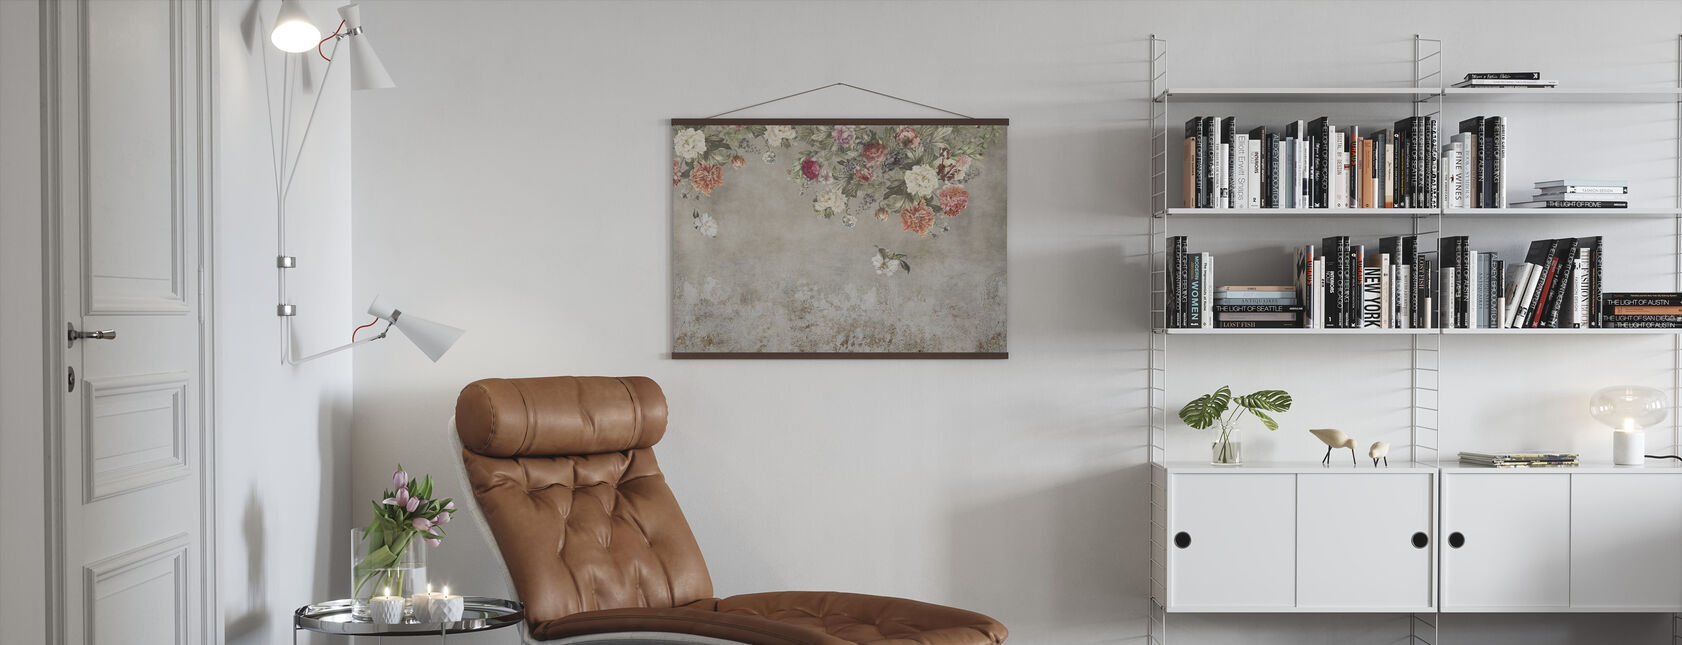 Vintage Flower Wall - Poster - Living Room